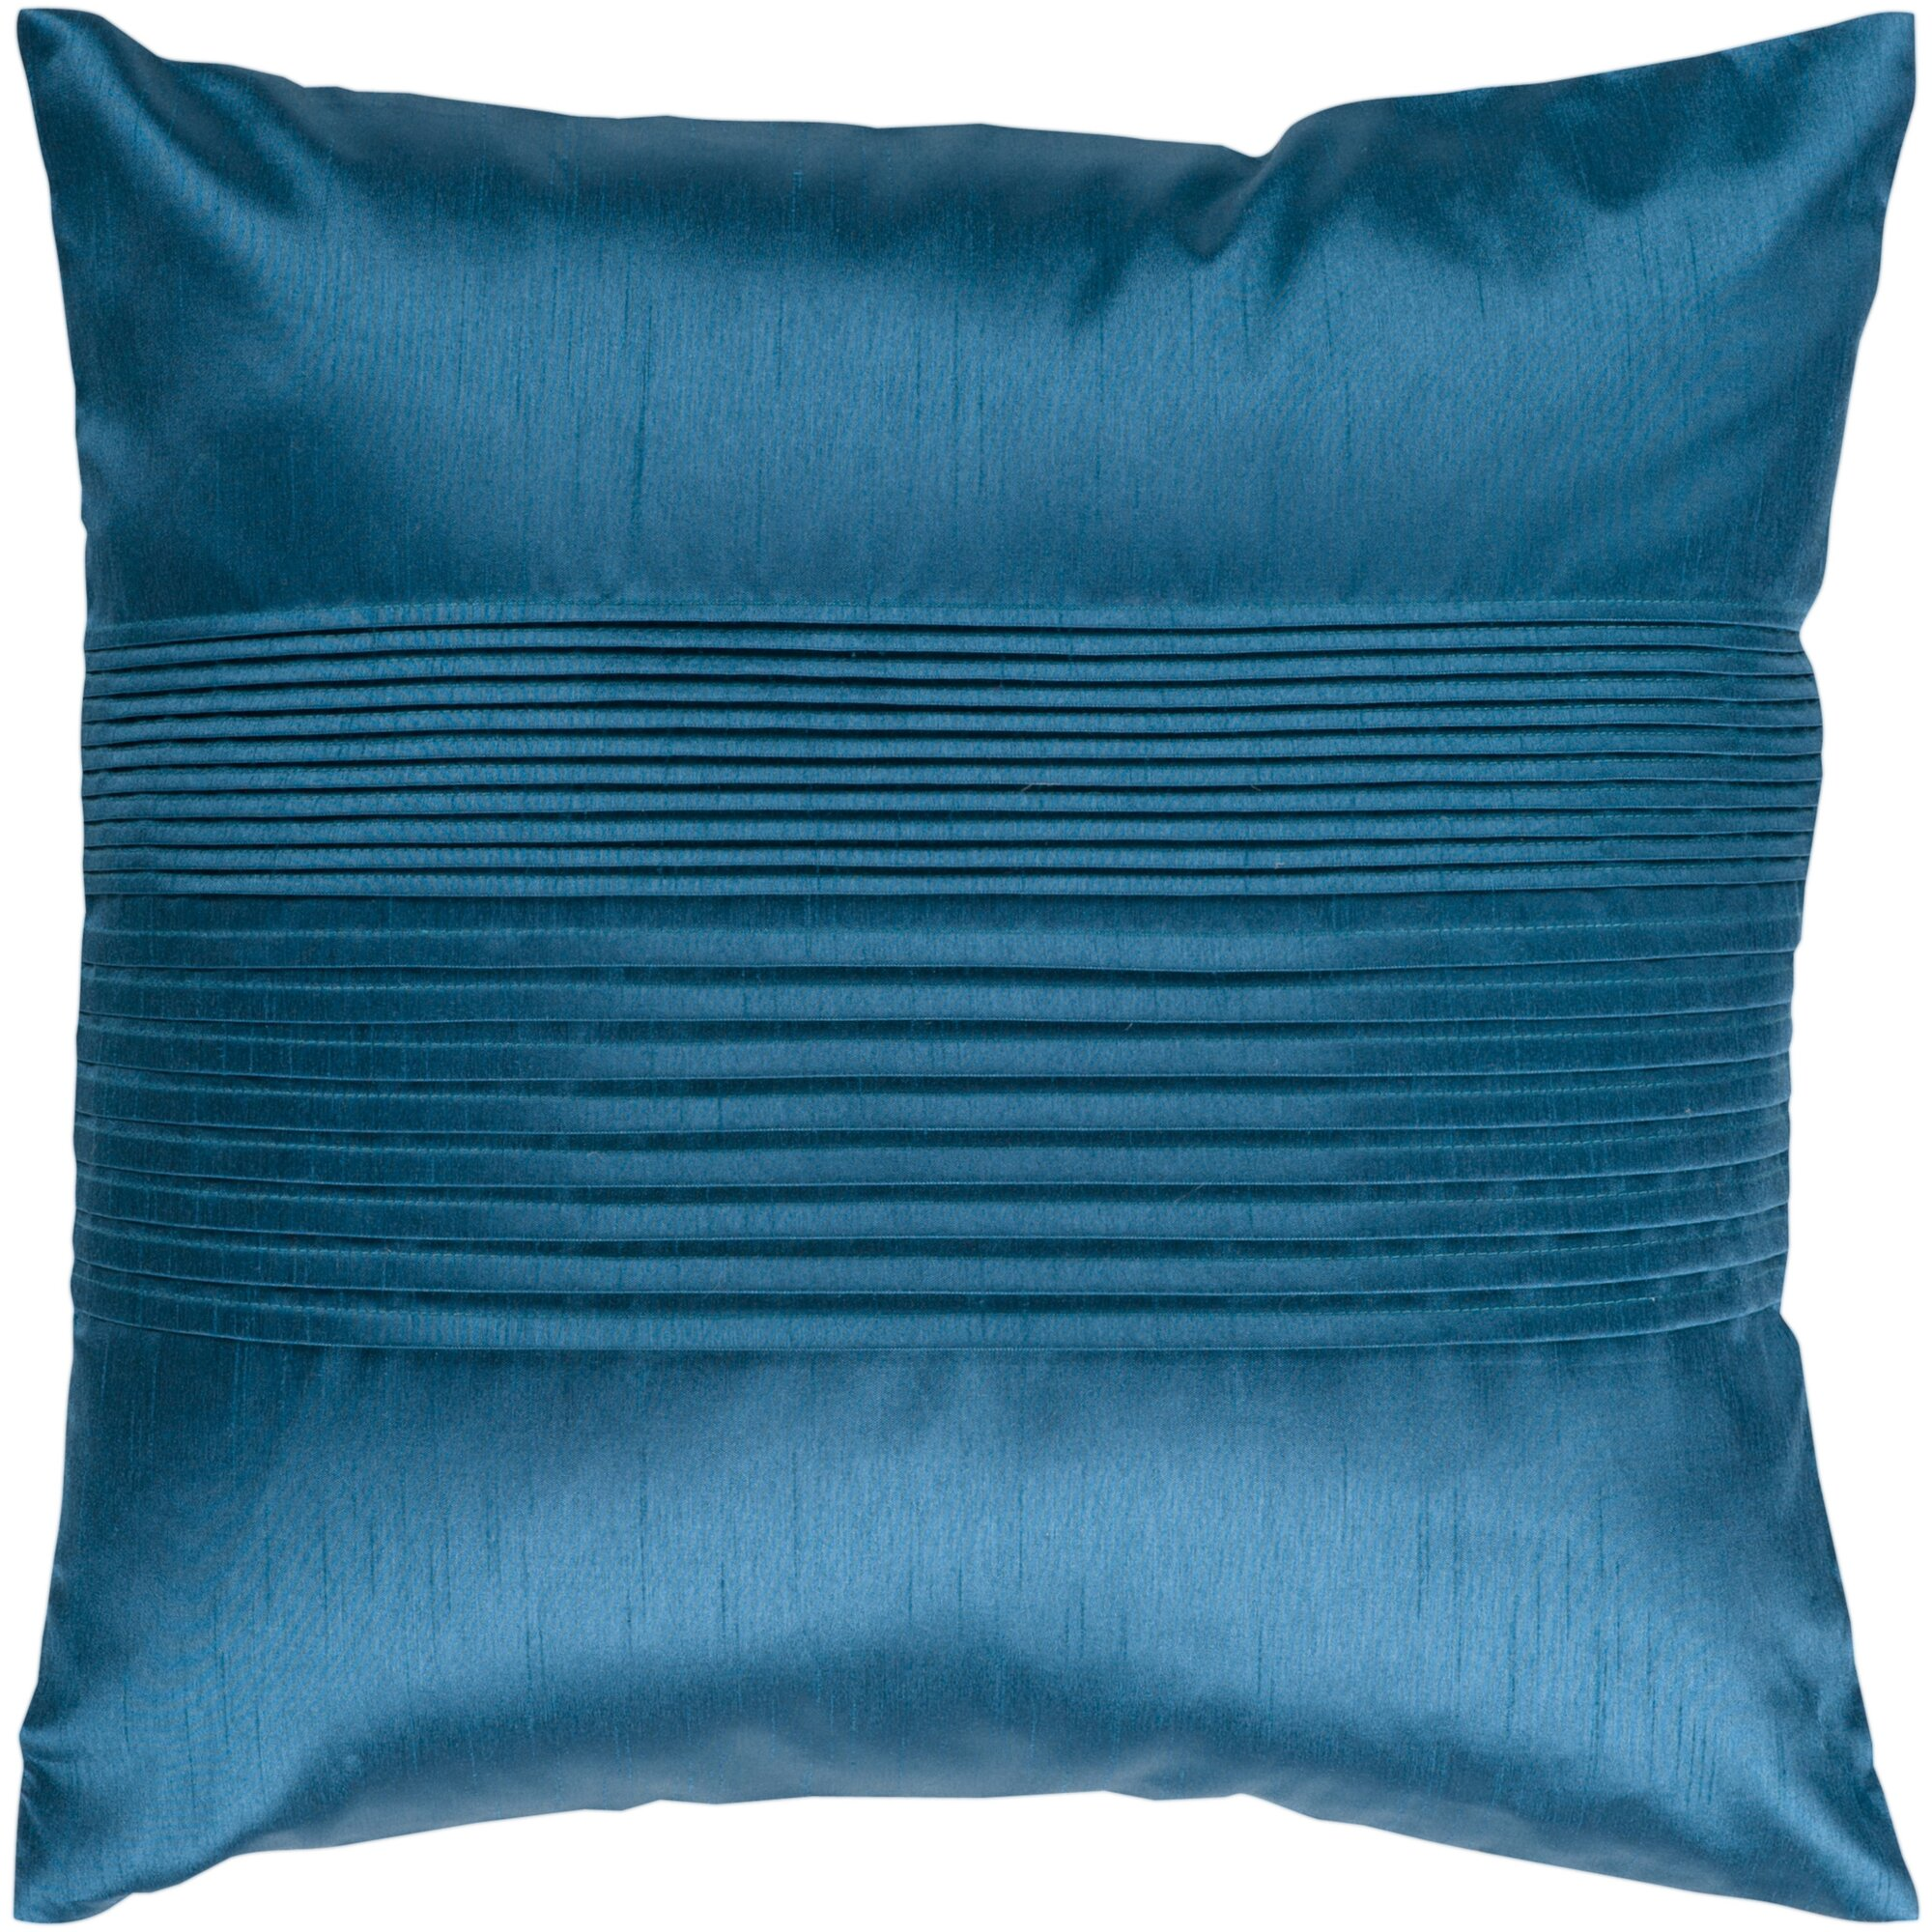 grullo solid pleated throw pillow cover - Decorative Pillow